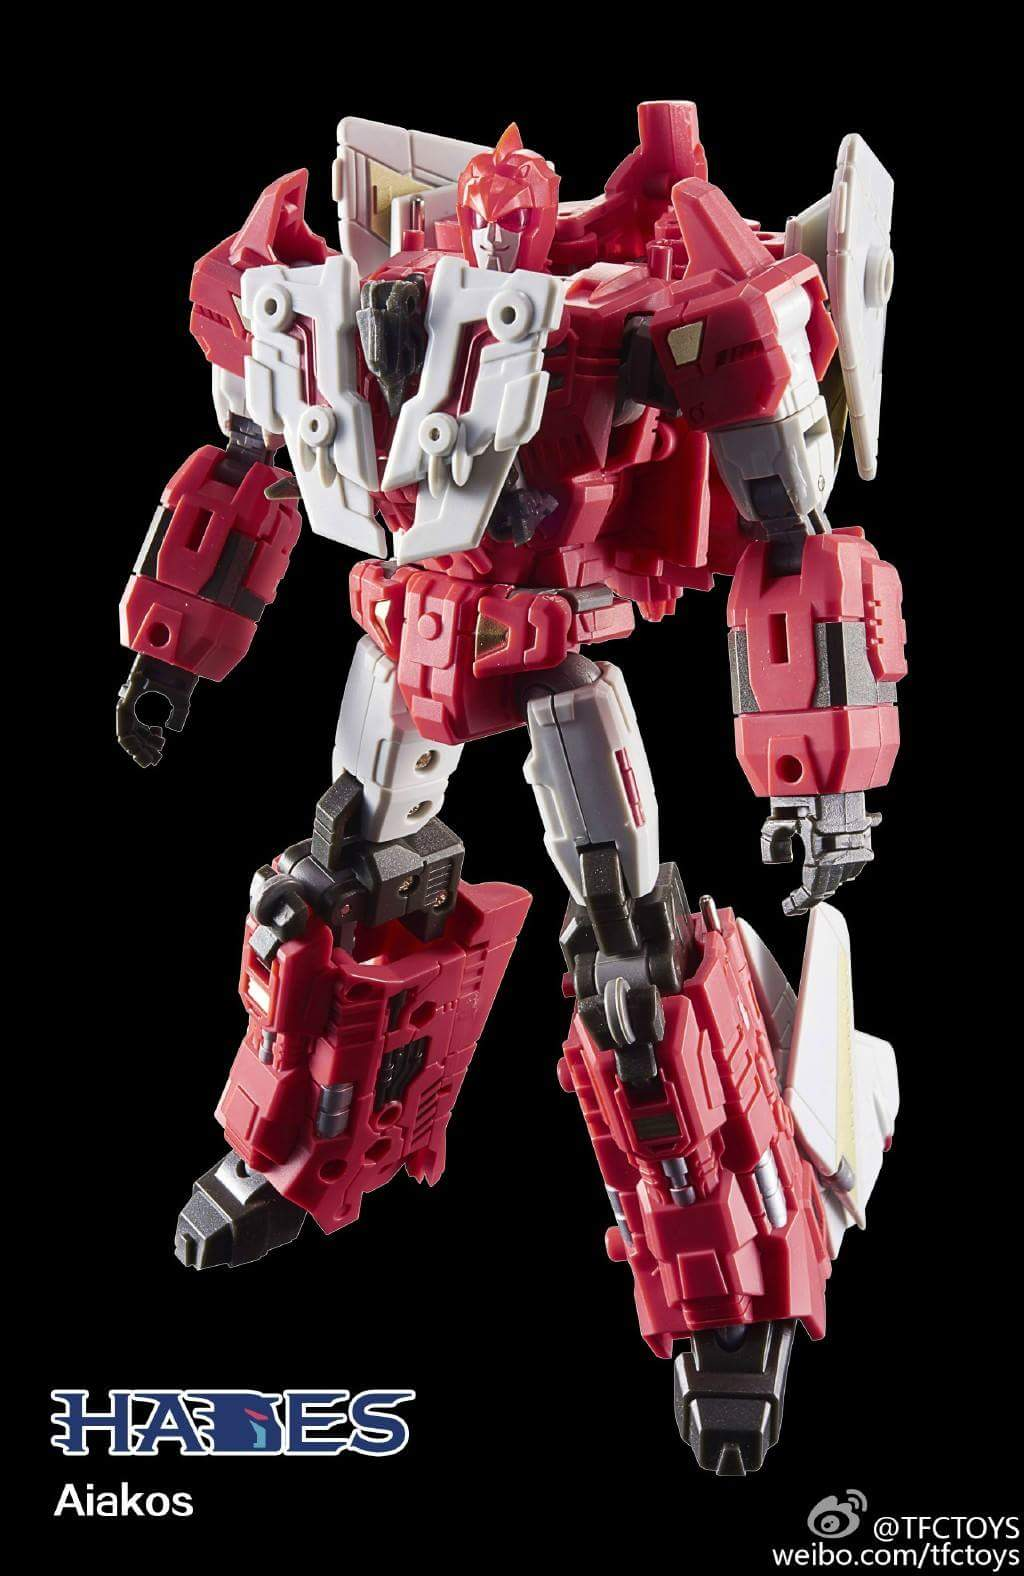 [TFC Toys] Produit Tiers - Jouet Hades - aka Liokaiser (Victory) - Page 3 YQZ0wp3O